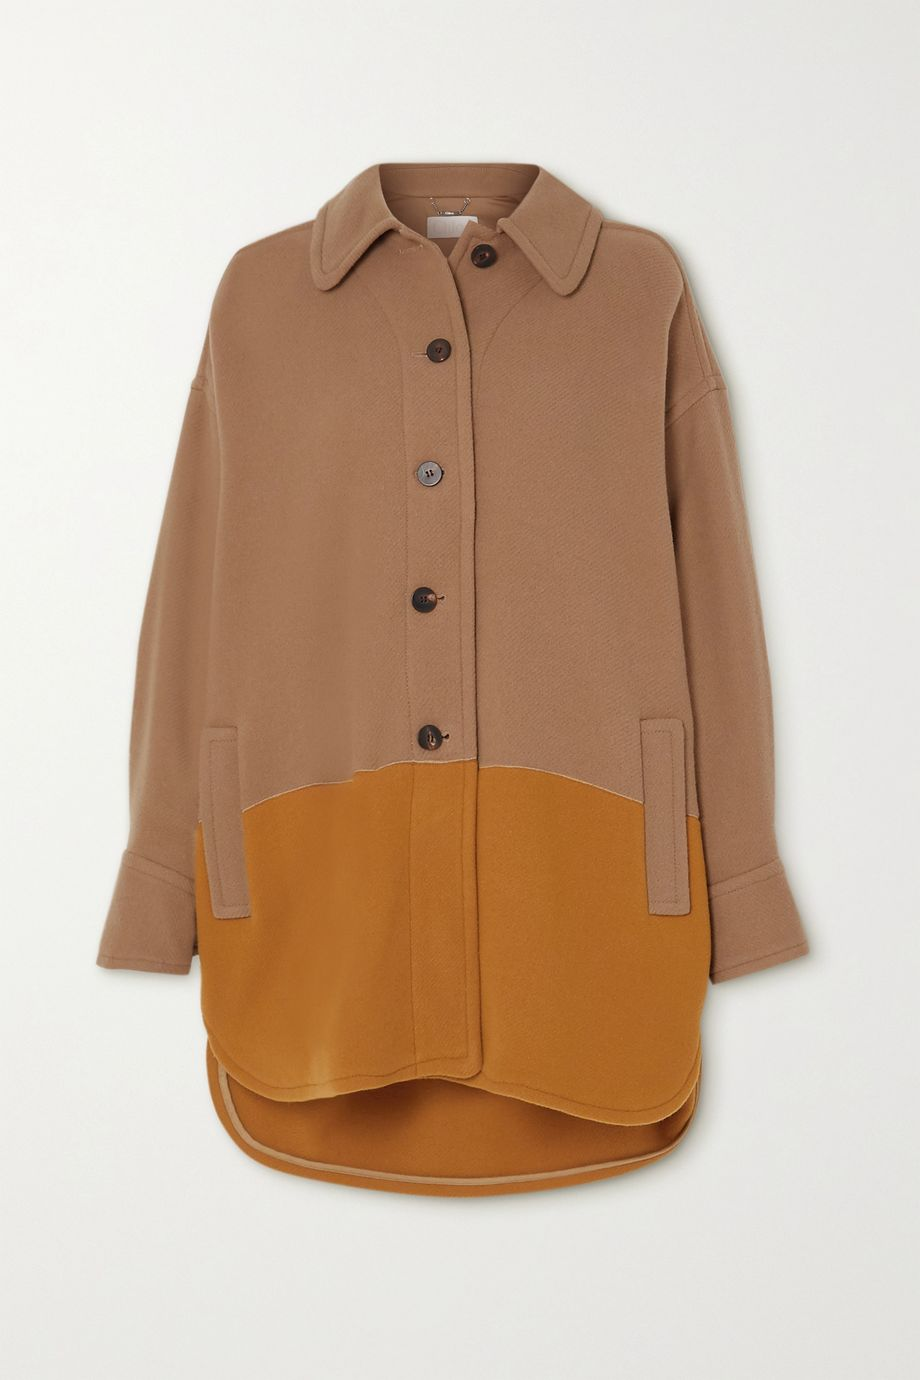 Chloé Two-tone wool-blend coat